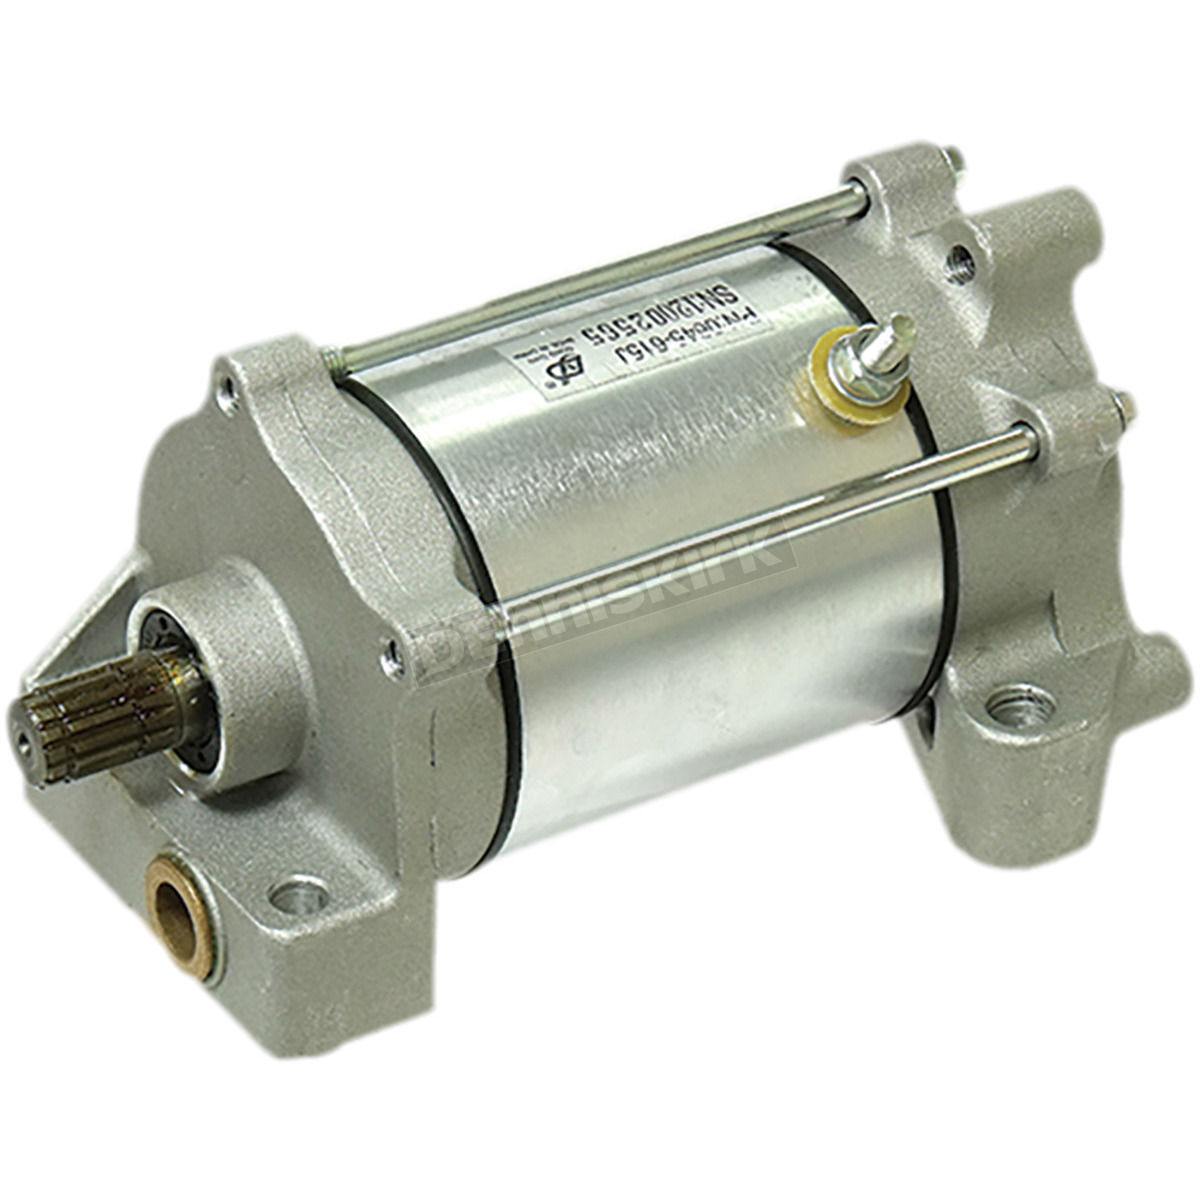 Sports parts inc starter motor sm 01316 snowmobile for Nhd inc motor starter